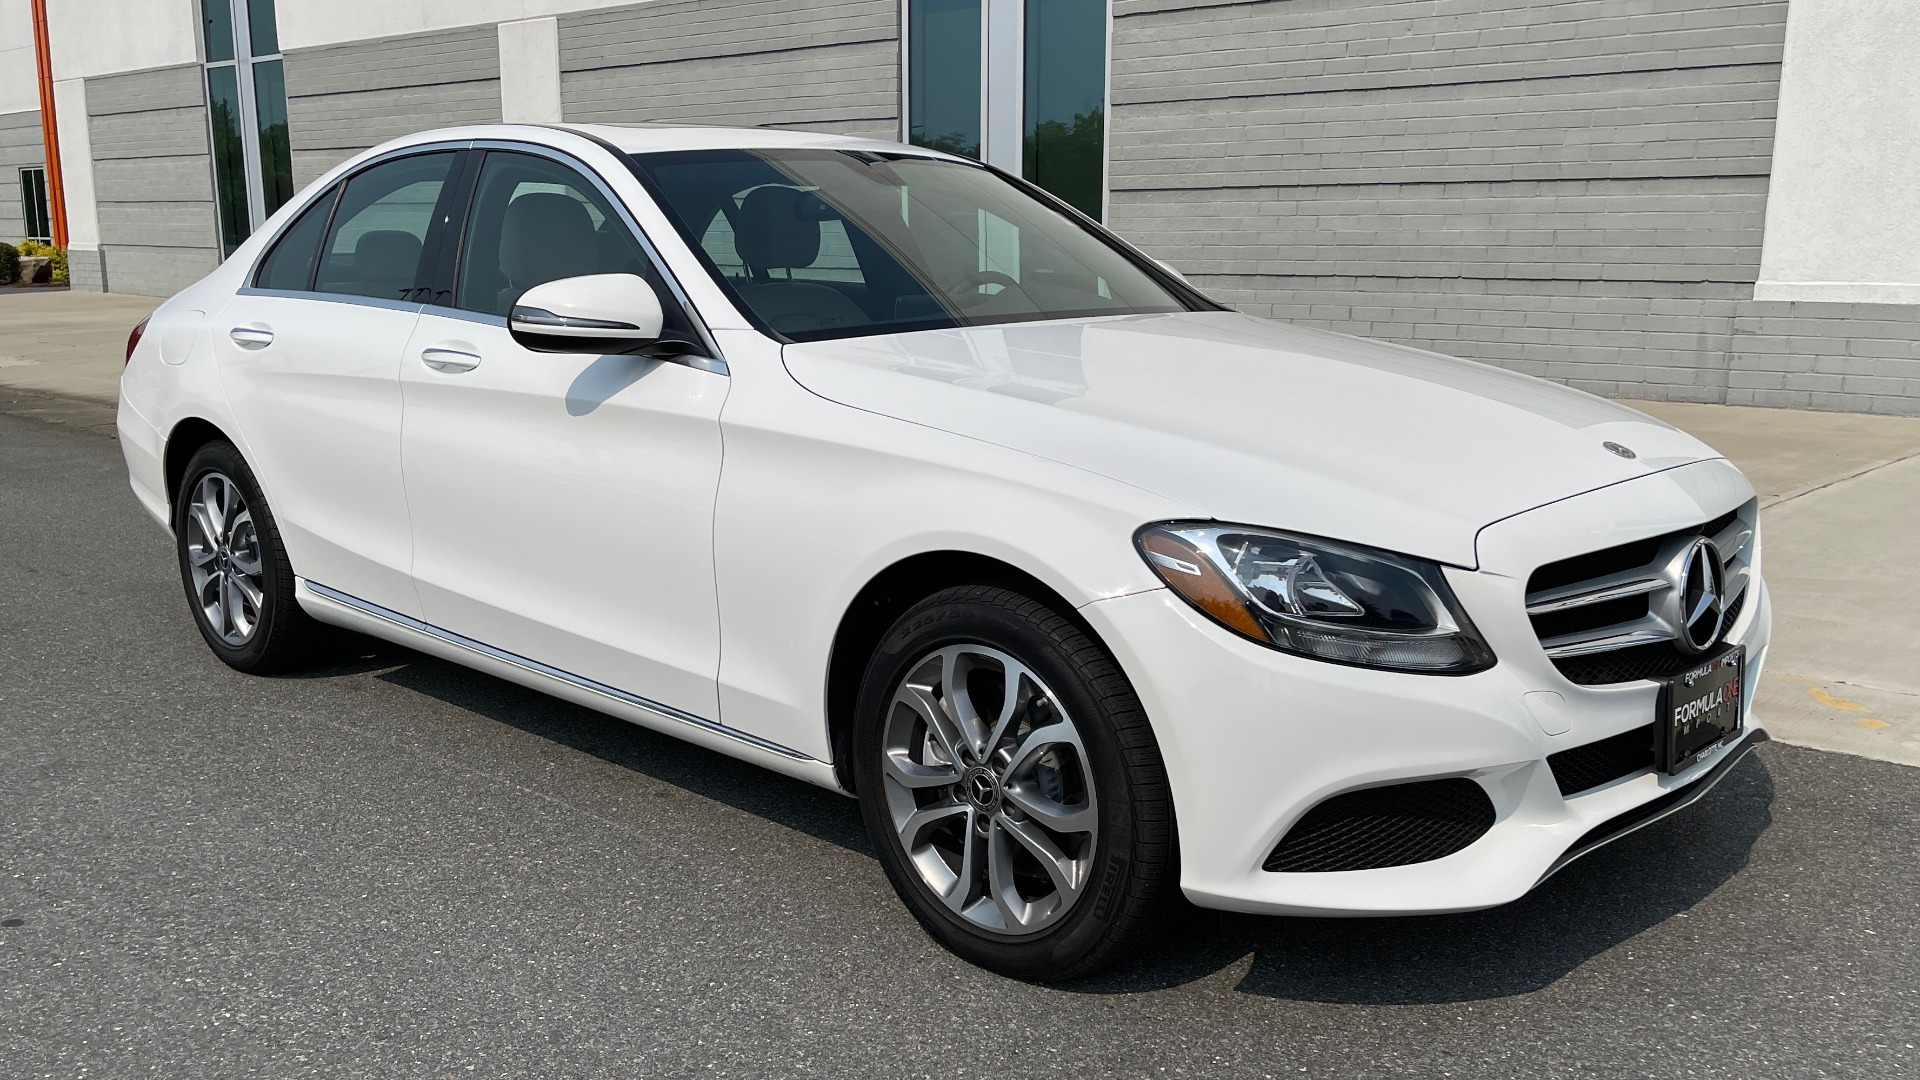 Used 2018 Mercedes-Benz C-Class C 300 4MATIC / PREMIUM / BURMESTER / HTD STS / SUNROOF / REARVIEW for sale $33,995 at Formula Imports in Charlotte NC 28227 6